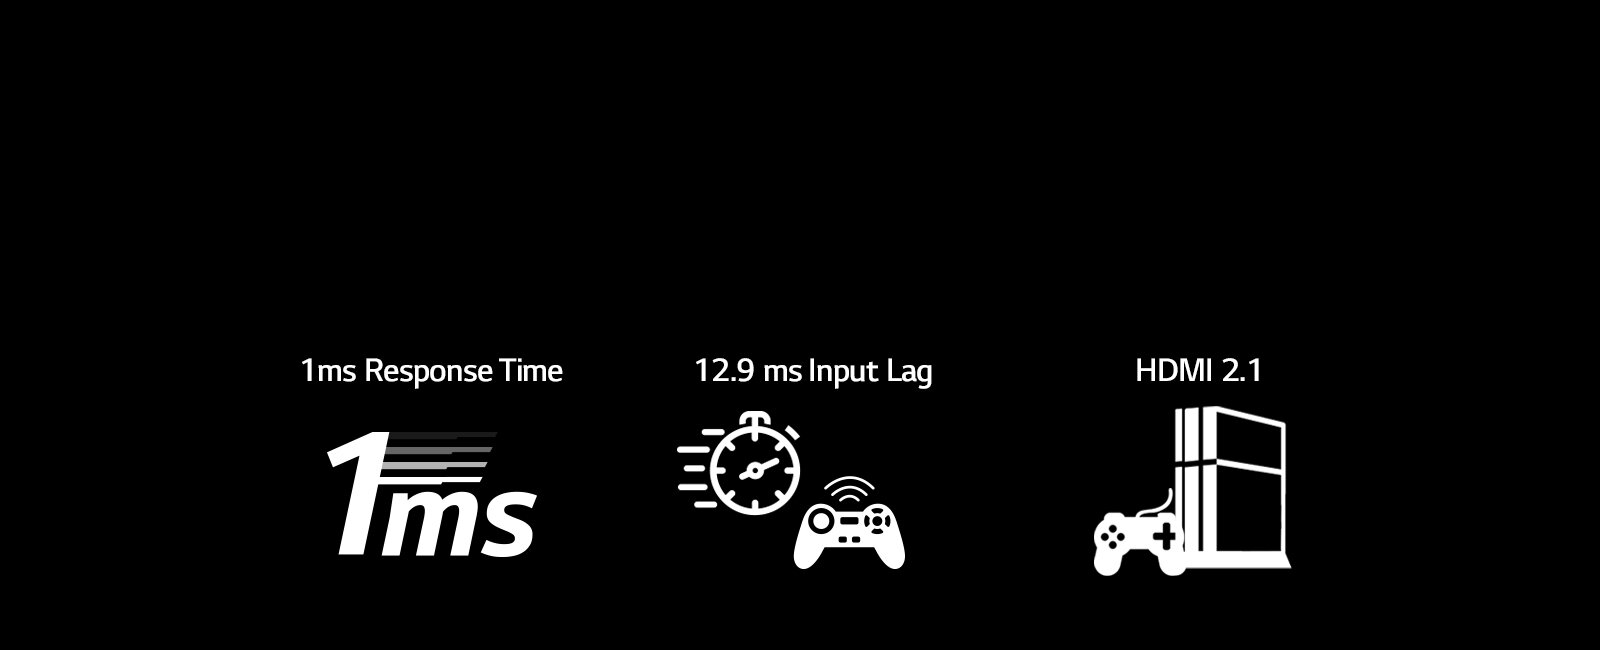 Fast Response, Fluid Motion - Upgrade your gameplay with the latest features. A 1ms response time* and low input lag allow smoother, real-time action. VRR and ALLM supported on HDMI 2.1 deliver the best graphics with minimal stutter at the fastest speeds.